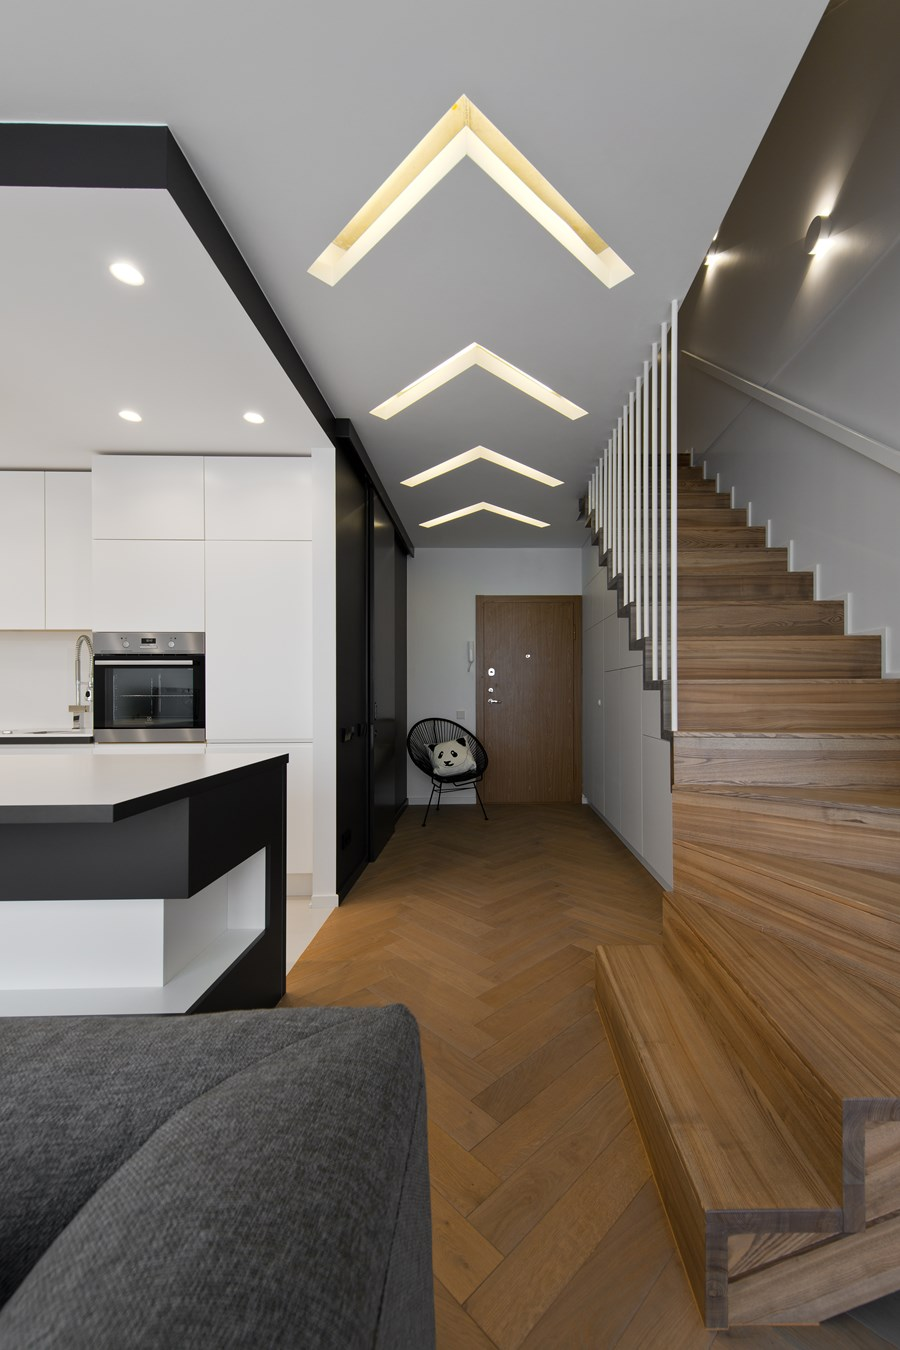 Butas River loft by In Arch 08